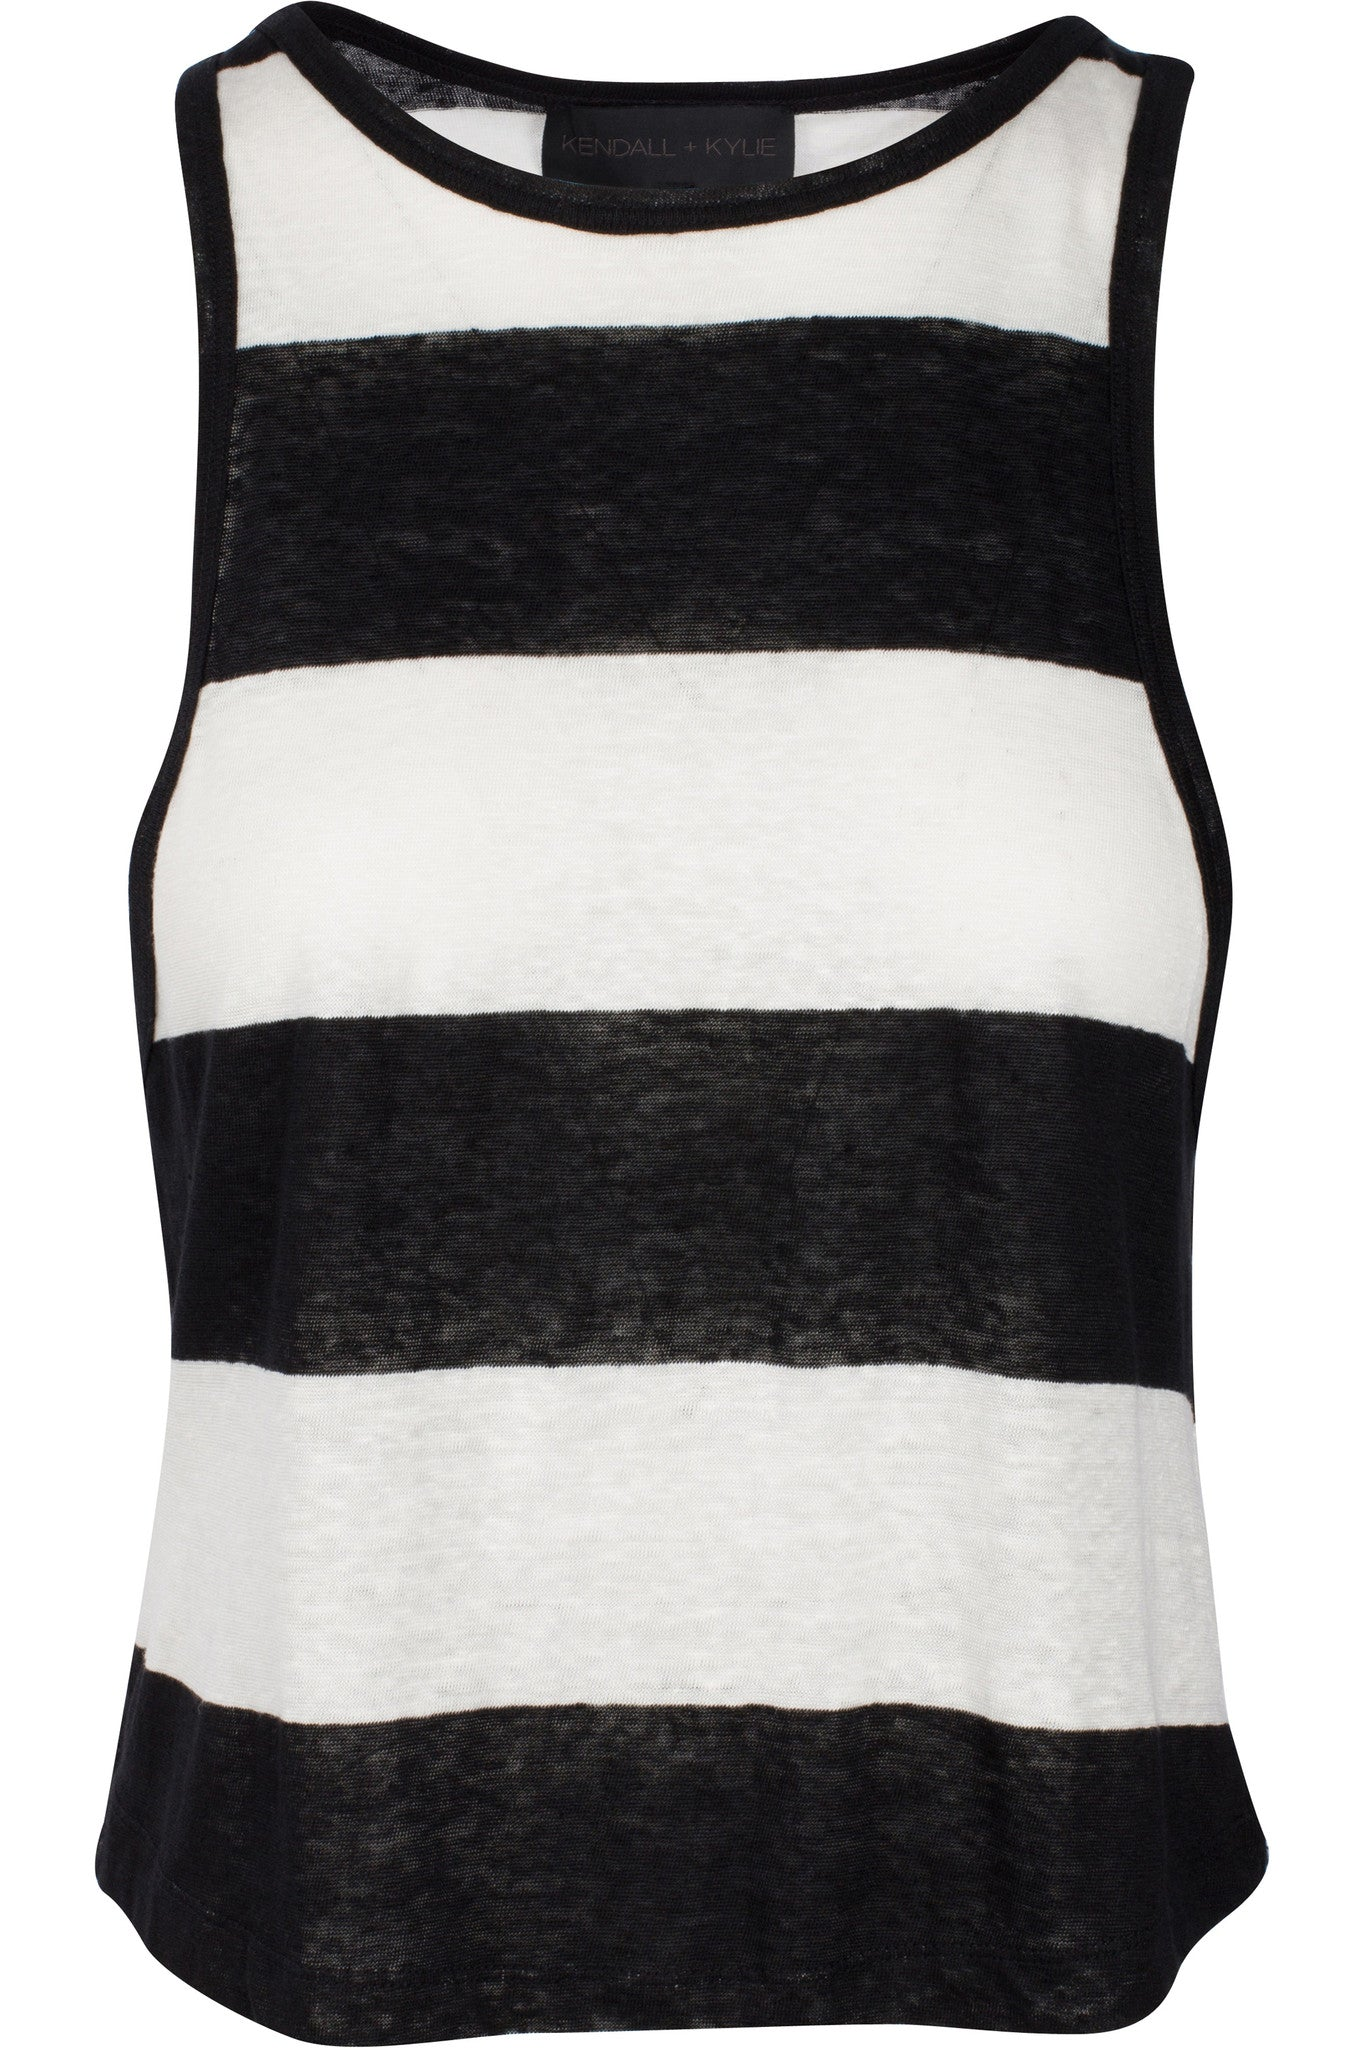 STRIPED LOW-CUT TANK TOPS by KENDALL + KYLIE